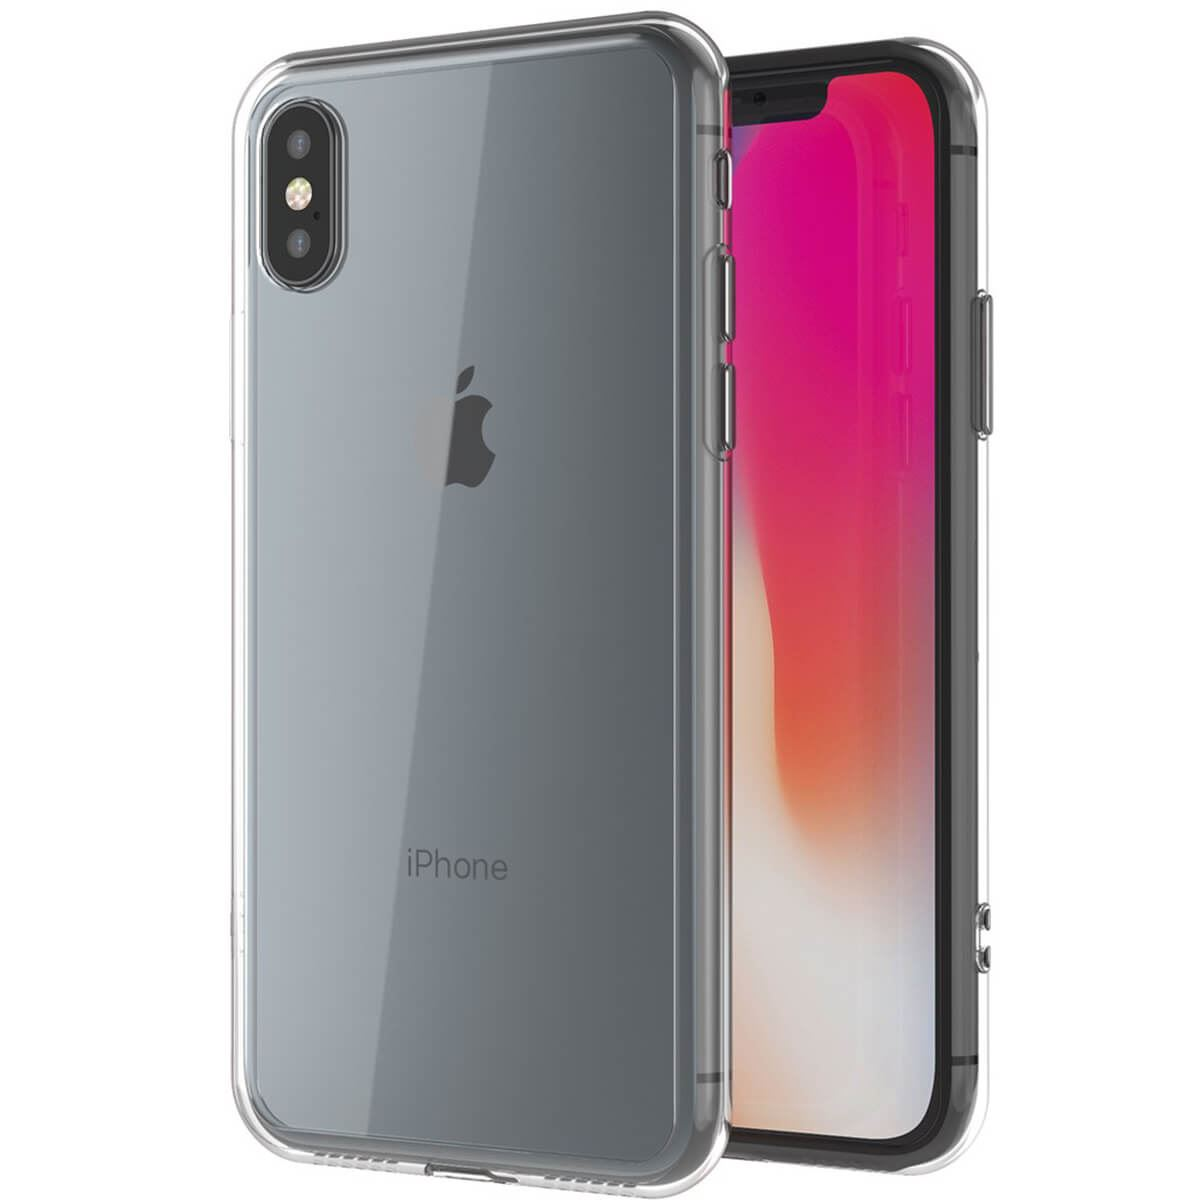 Shockproof-Case-For-Apple-iPhone-X-8-7-Plus-6-5s-Se-Clear-Slim-Bumper-TPU-Cover thumbnail 10